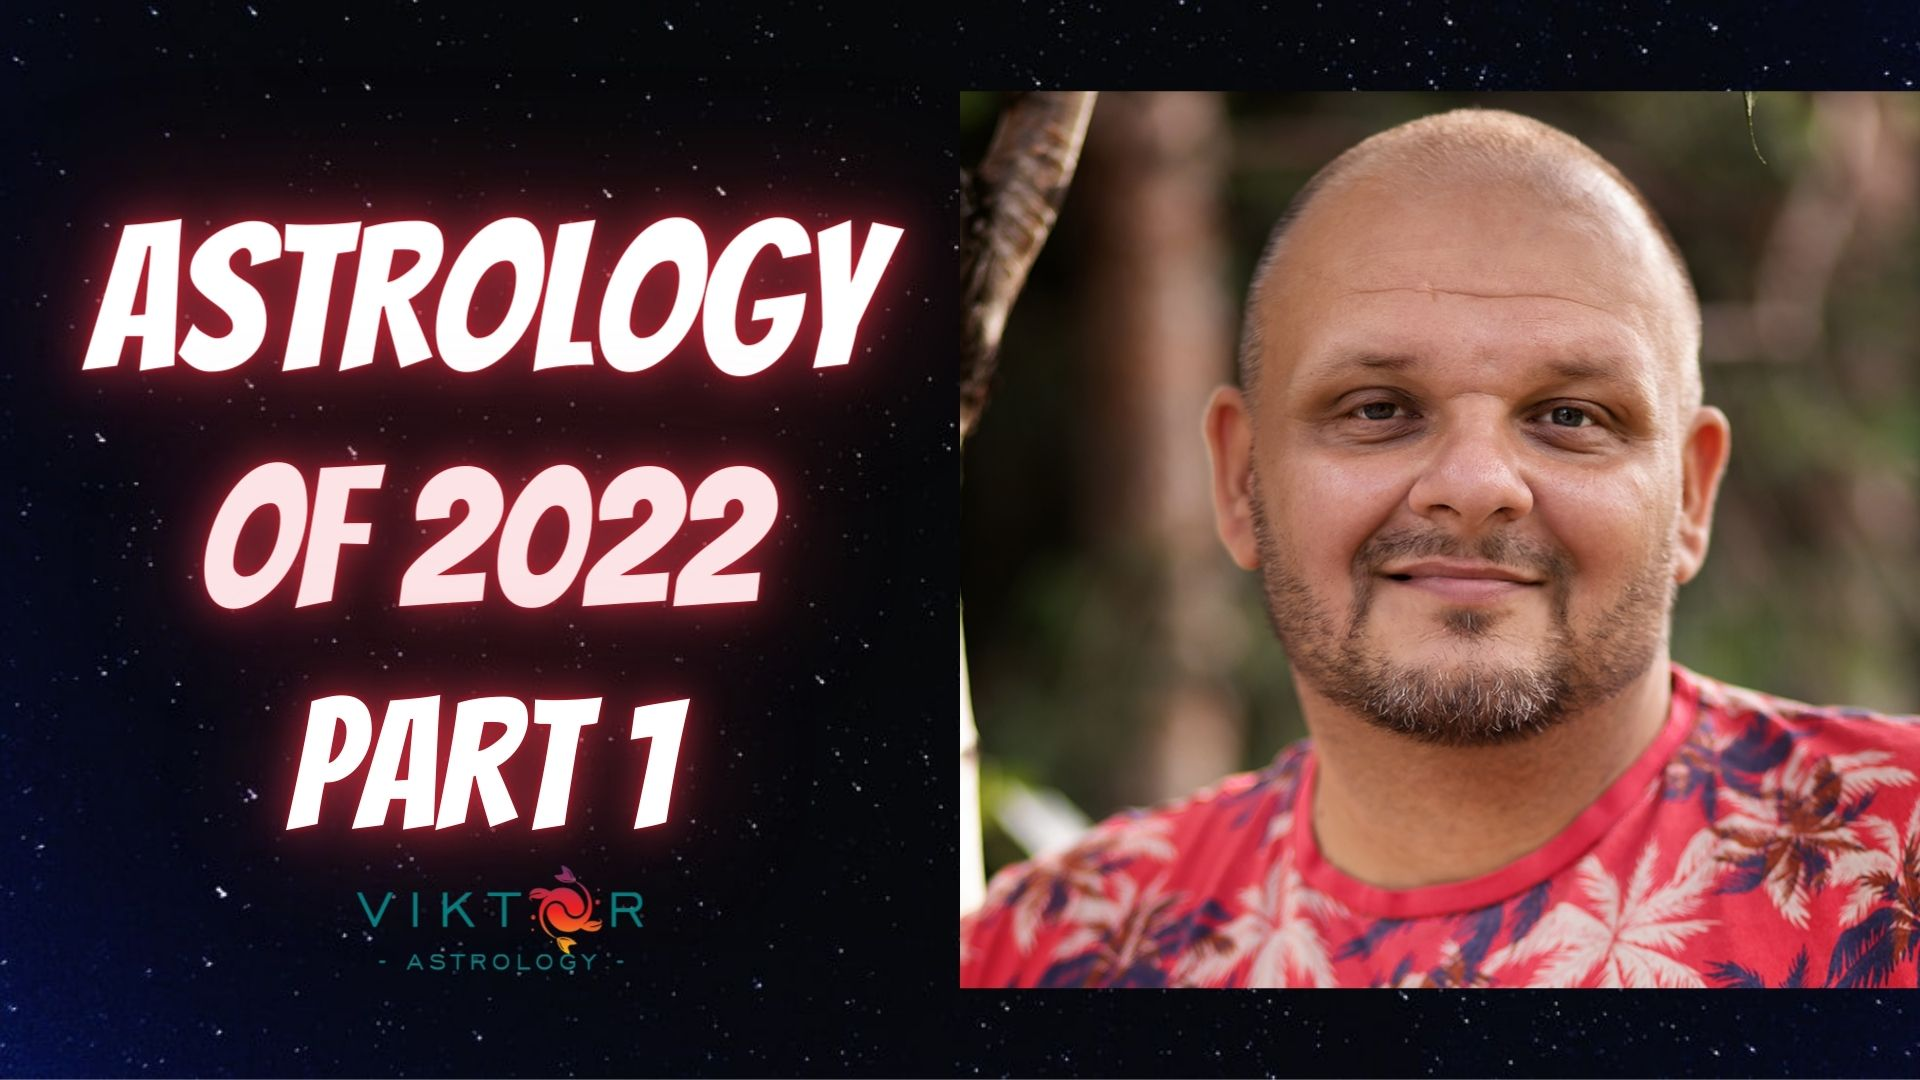 Astrology of 2022 Part 1